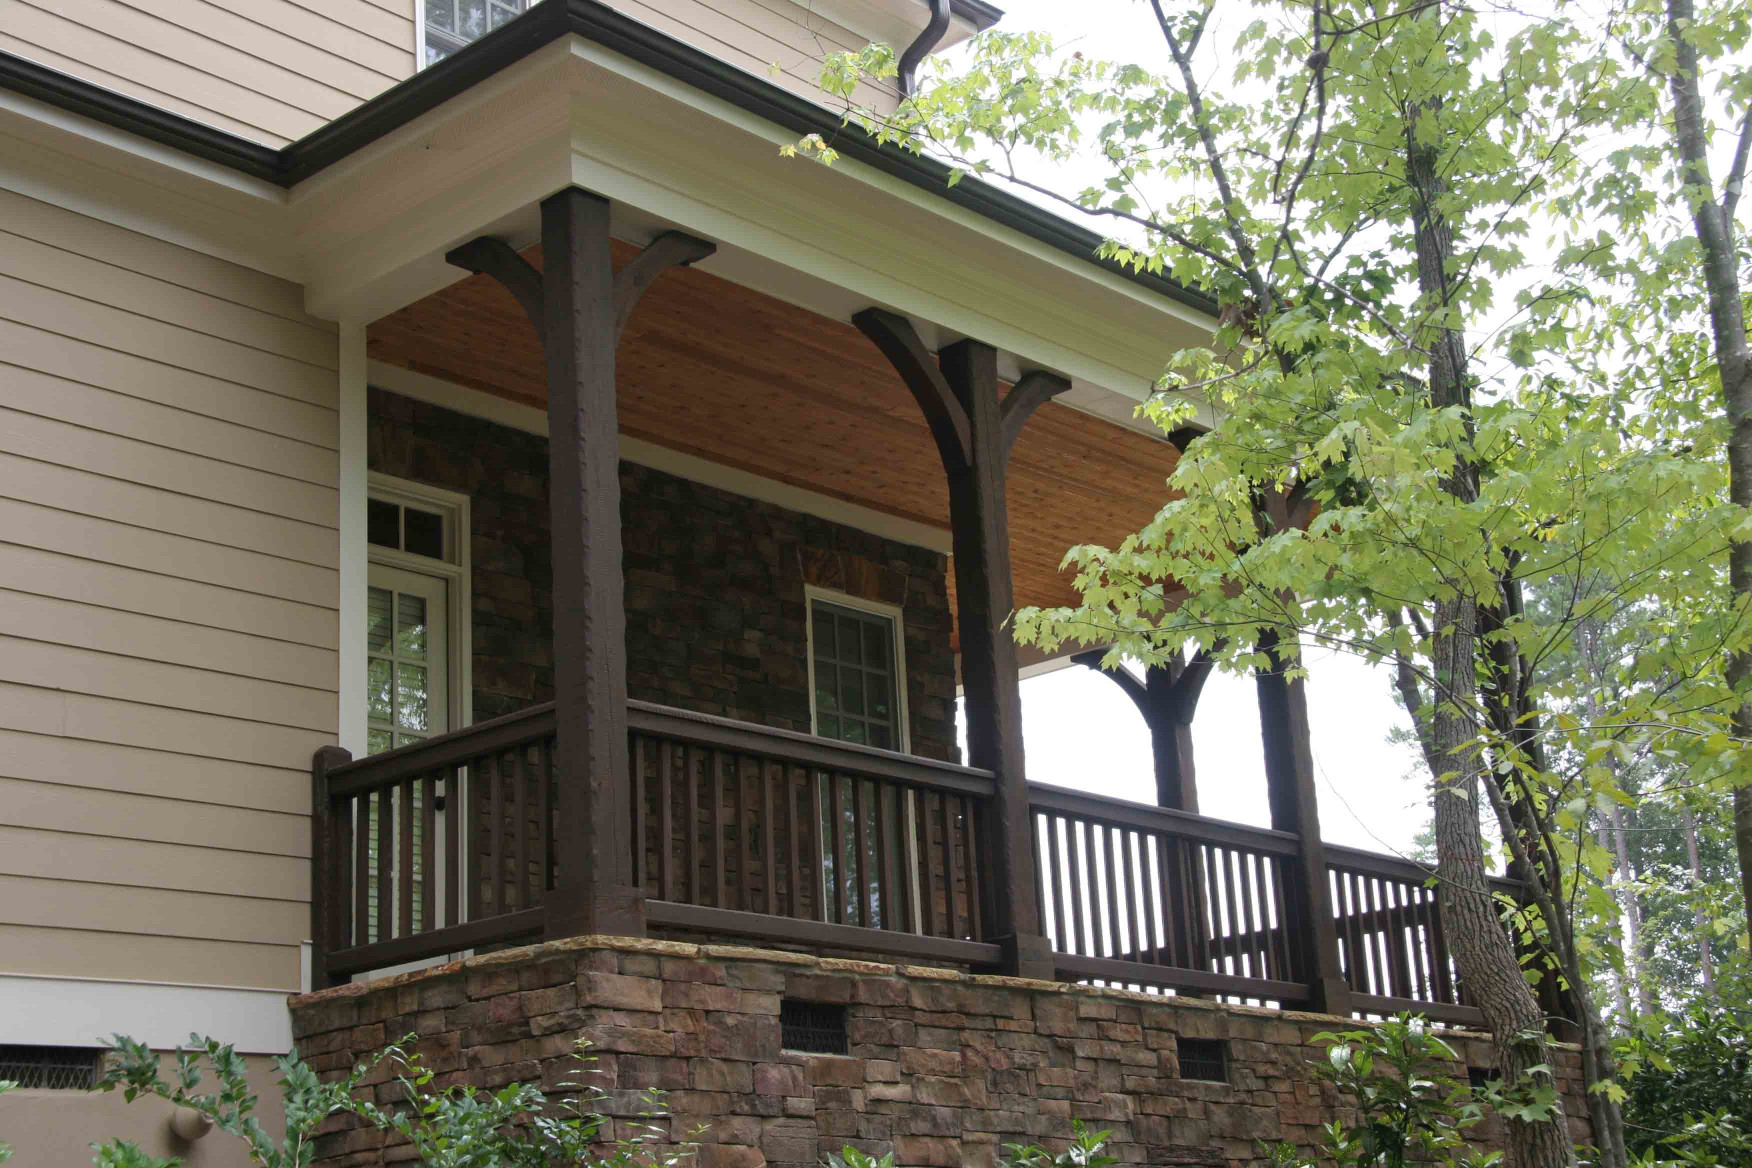 The wood braces and posts on this home add to the elegance of this wrap around porch.